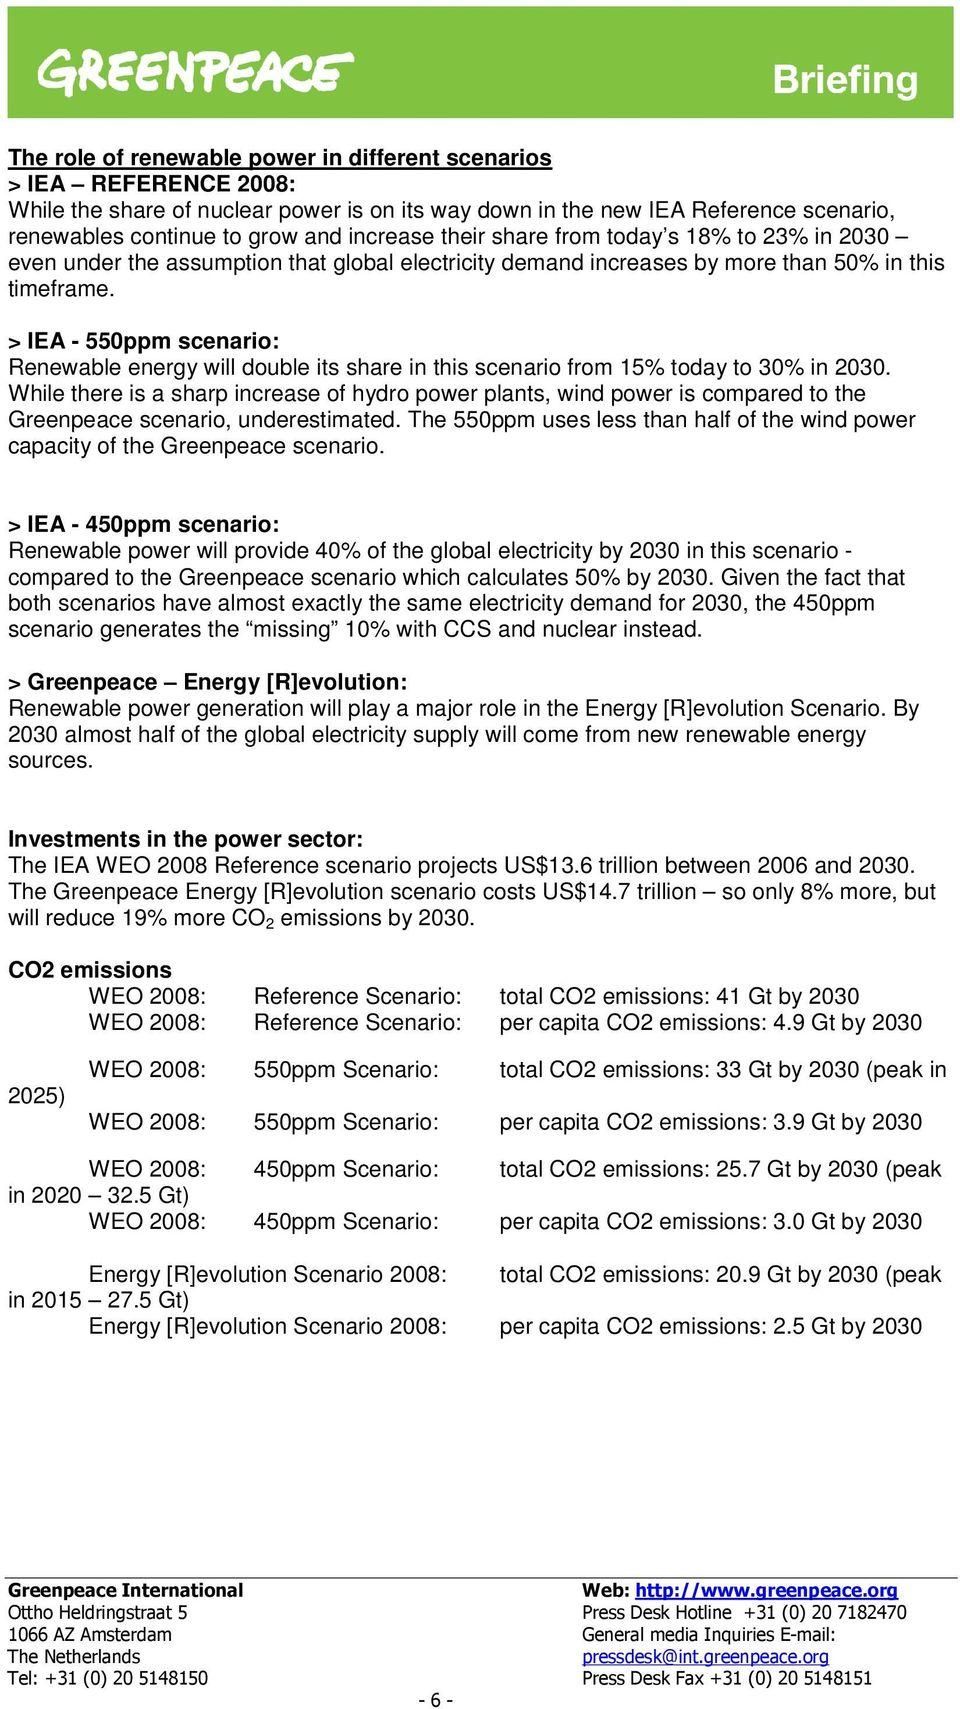 > IEA - 550ppm scenario: Renewable energy will double its share in this scenario from 15% today to 30% in 2030.